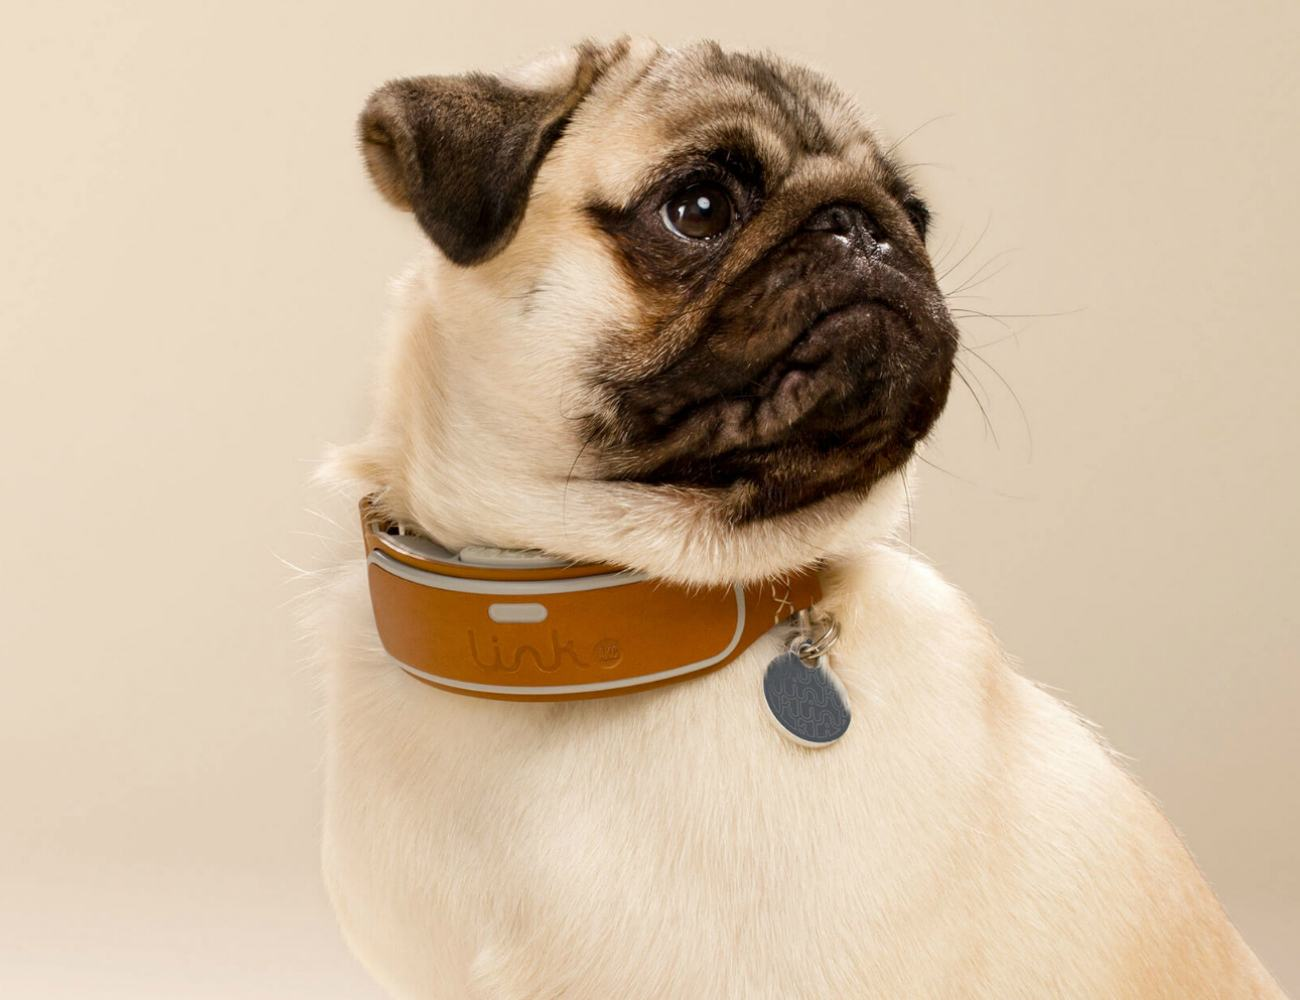 LINK AKC Intelligent Dog Collar